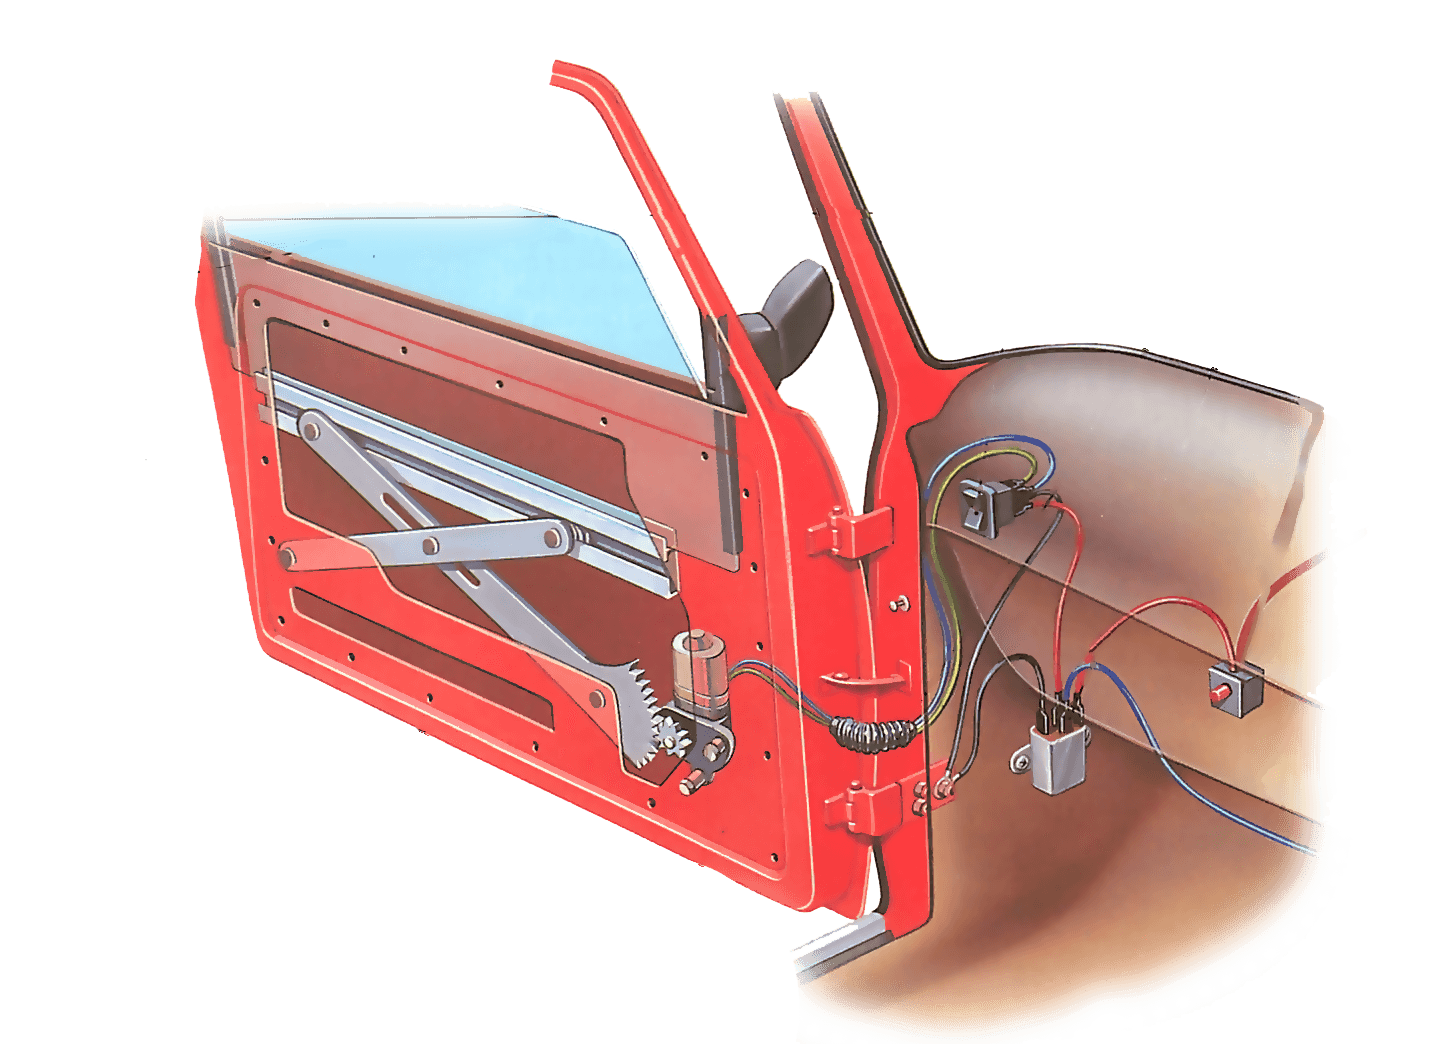 Repairing An Electric Window How A Car Works Ignition Starter Switch Wiring Diagram Autos Weblog